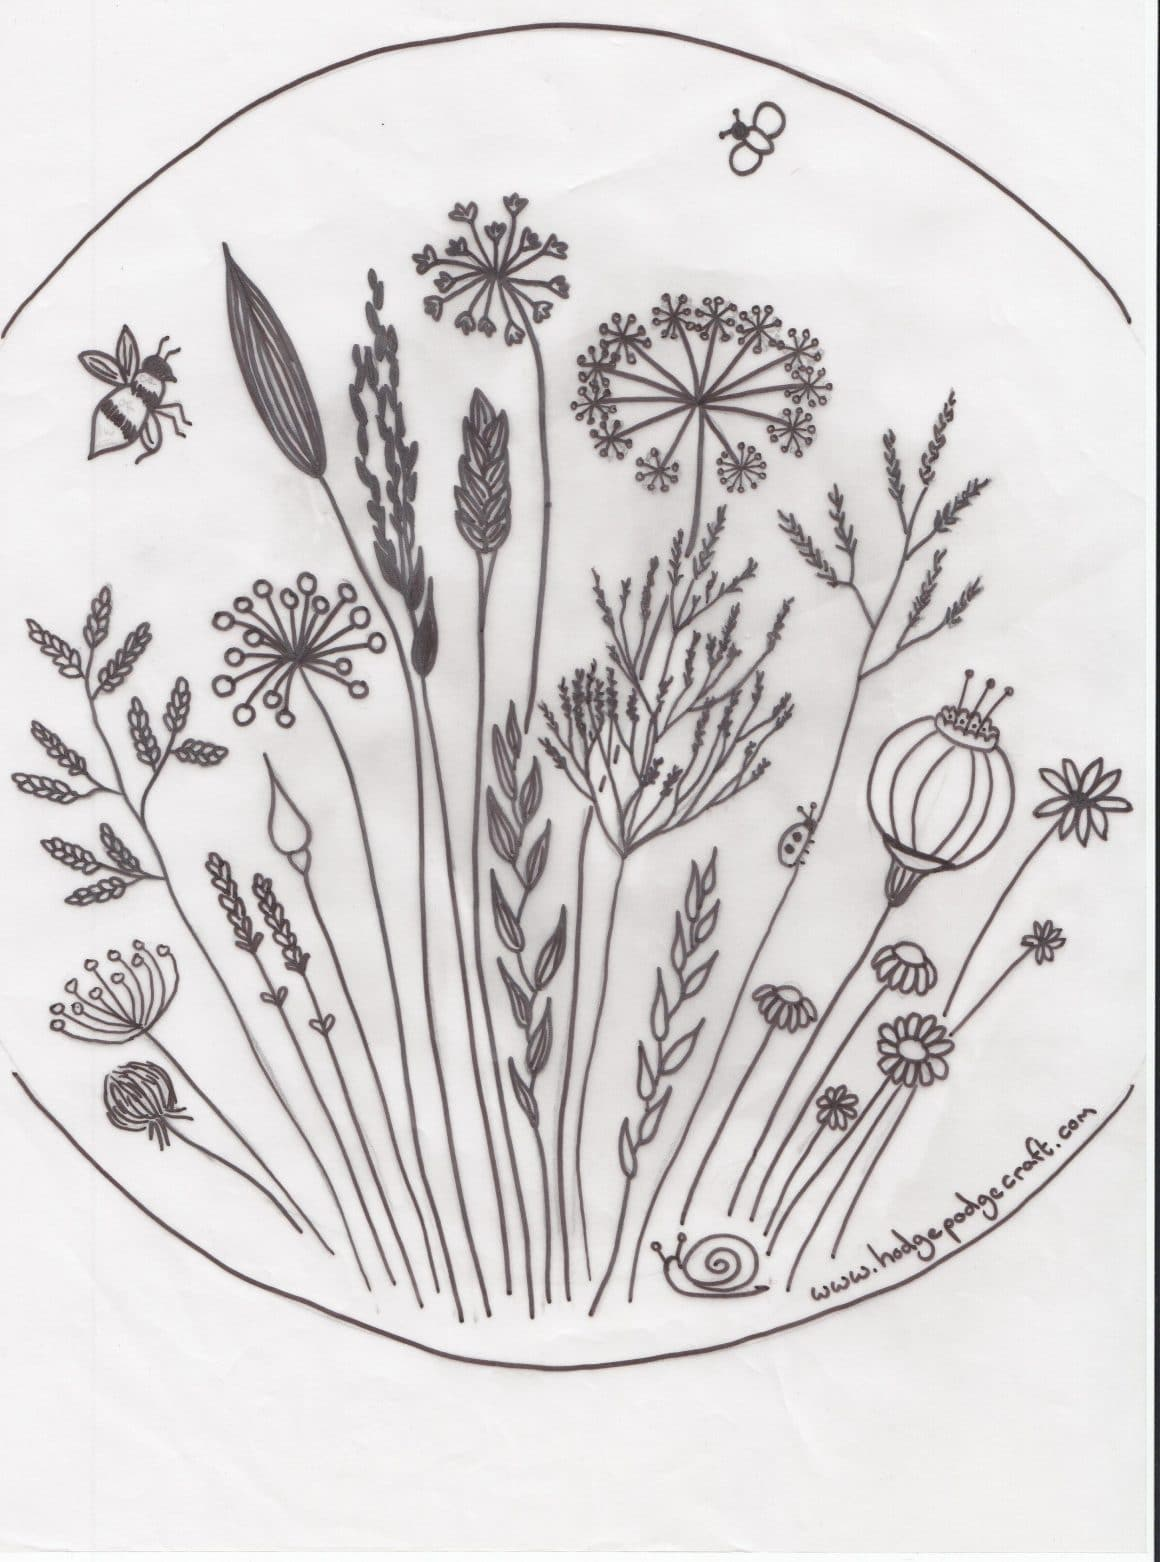 photograph regarding Printable Embroidery Patterns named Free of charge floral meadow embroidery behavior